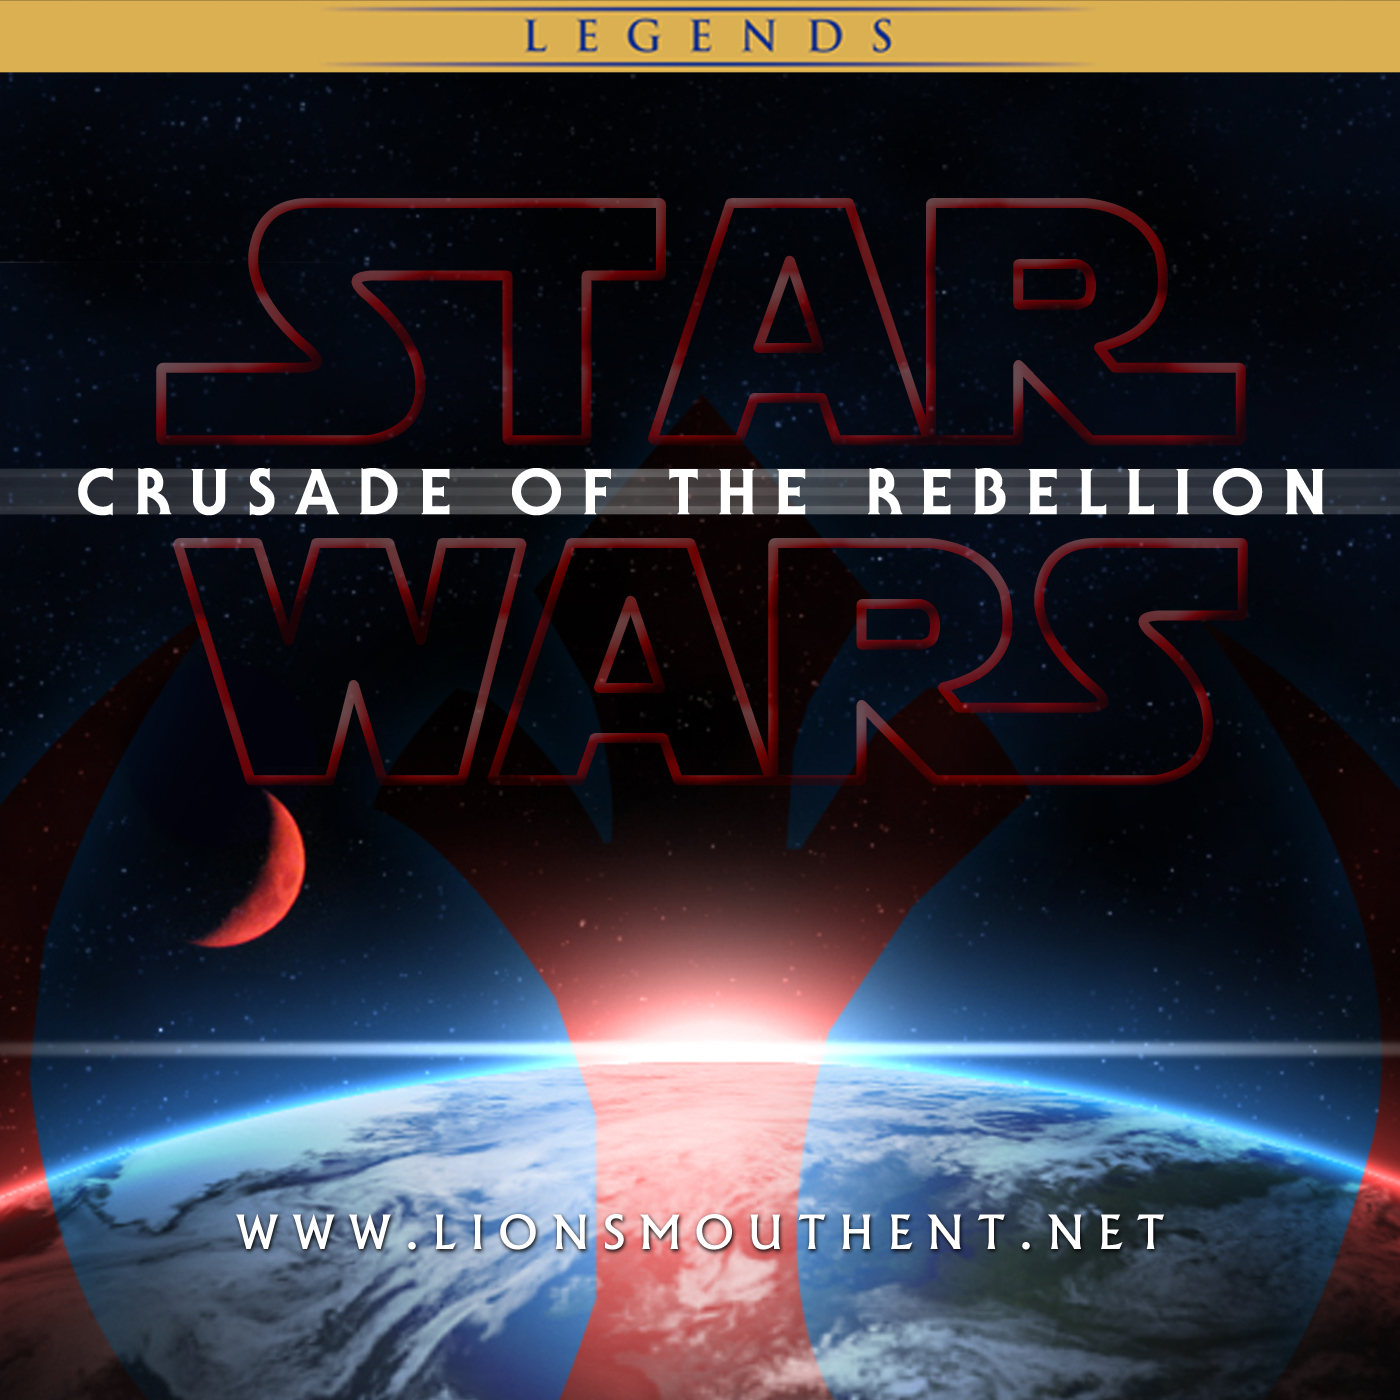 Star Wars: Crusade of the Rebellion